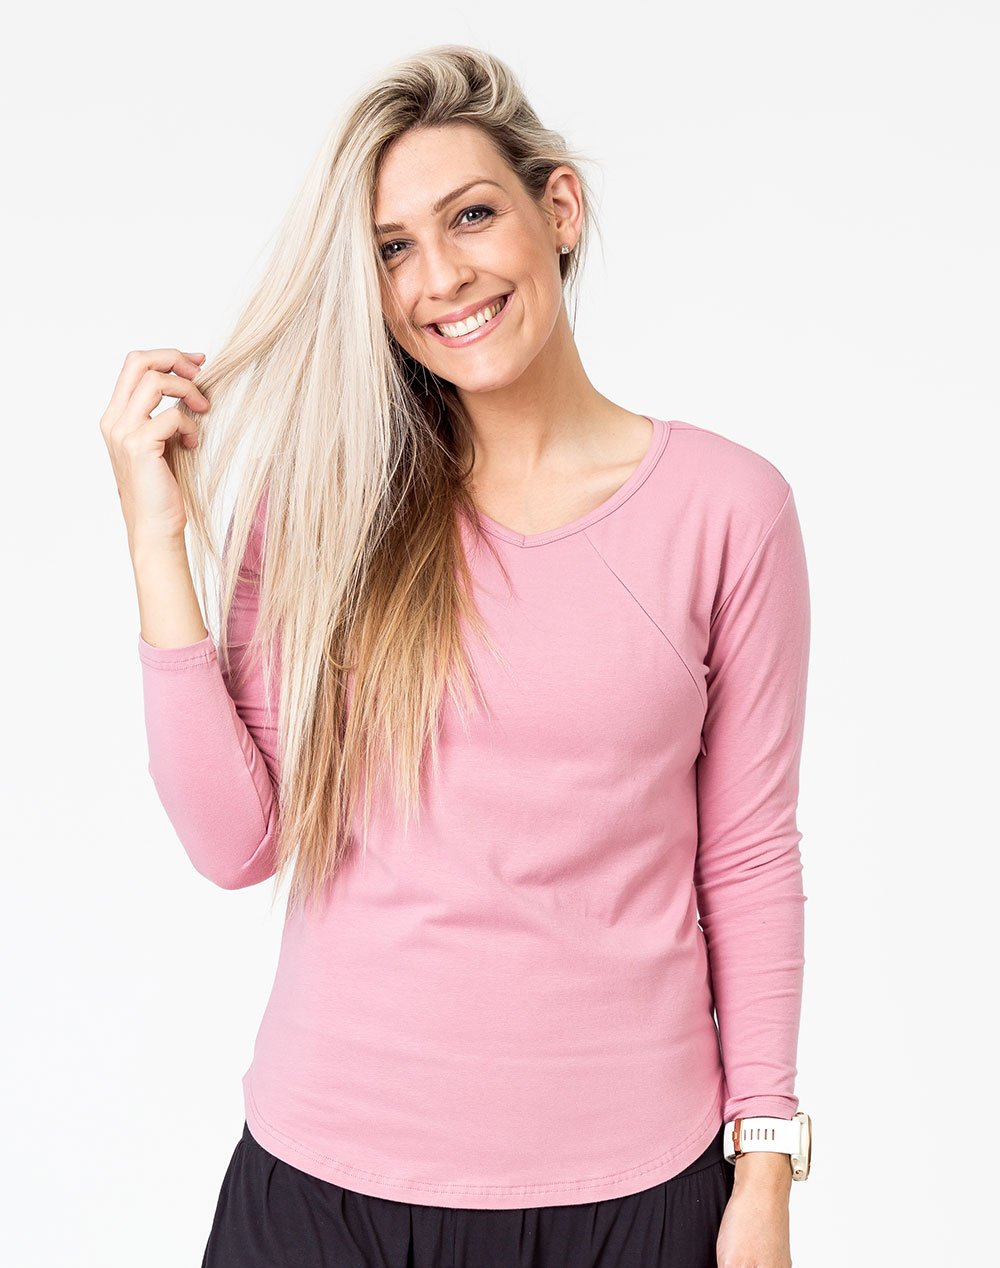 active mum wearing a pink maternity top with long sleeves and invisible zips for breastfeeding